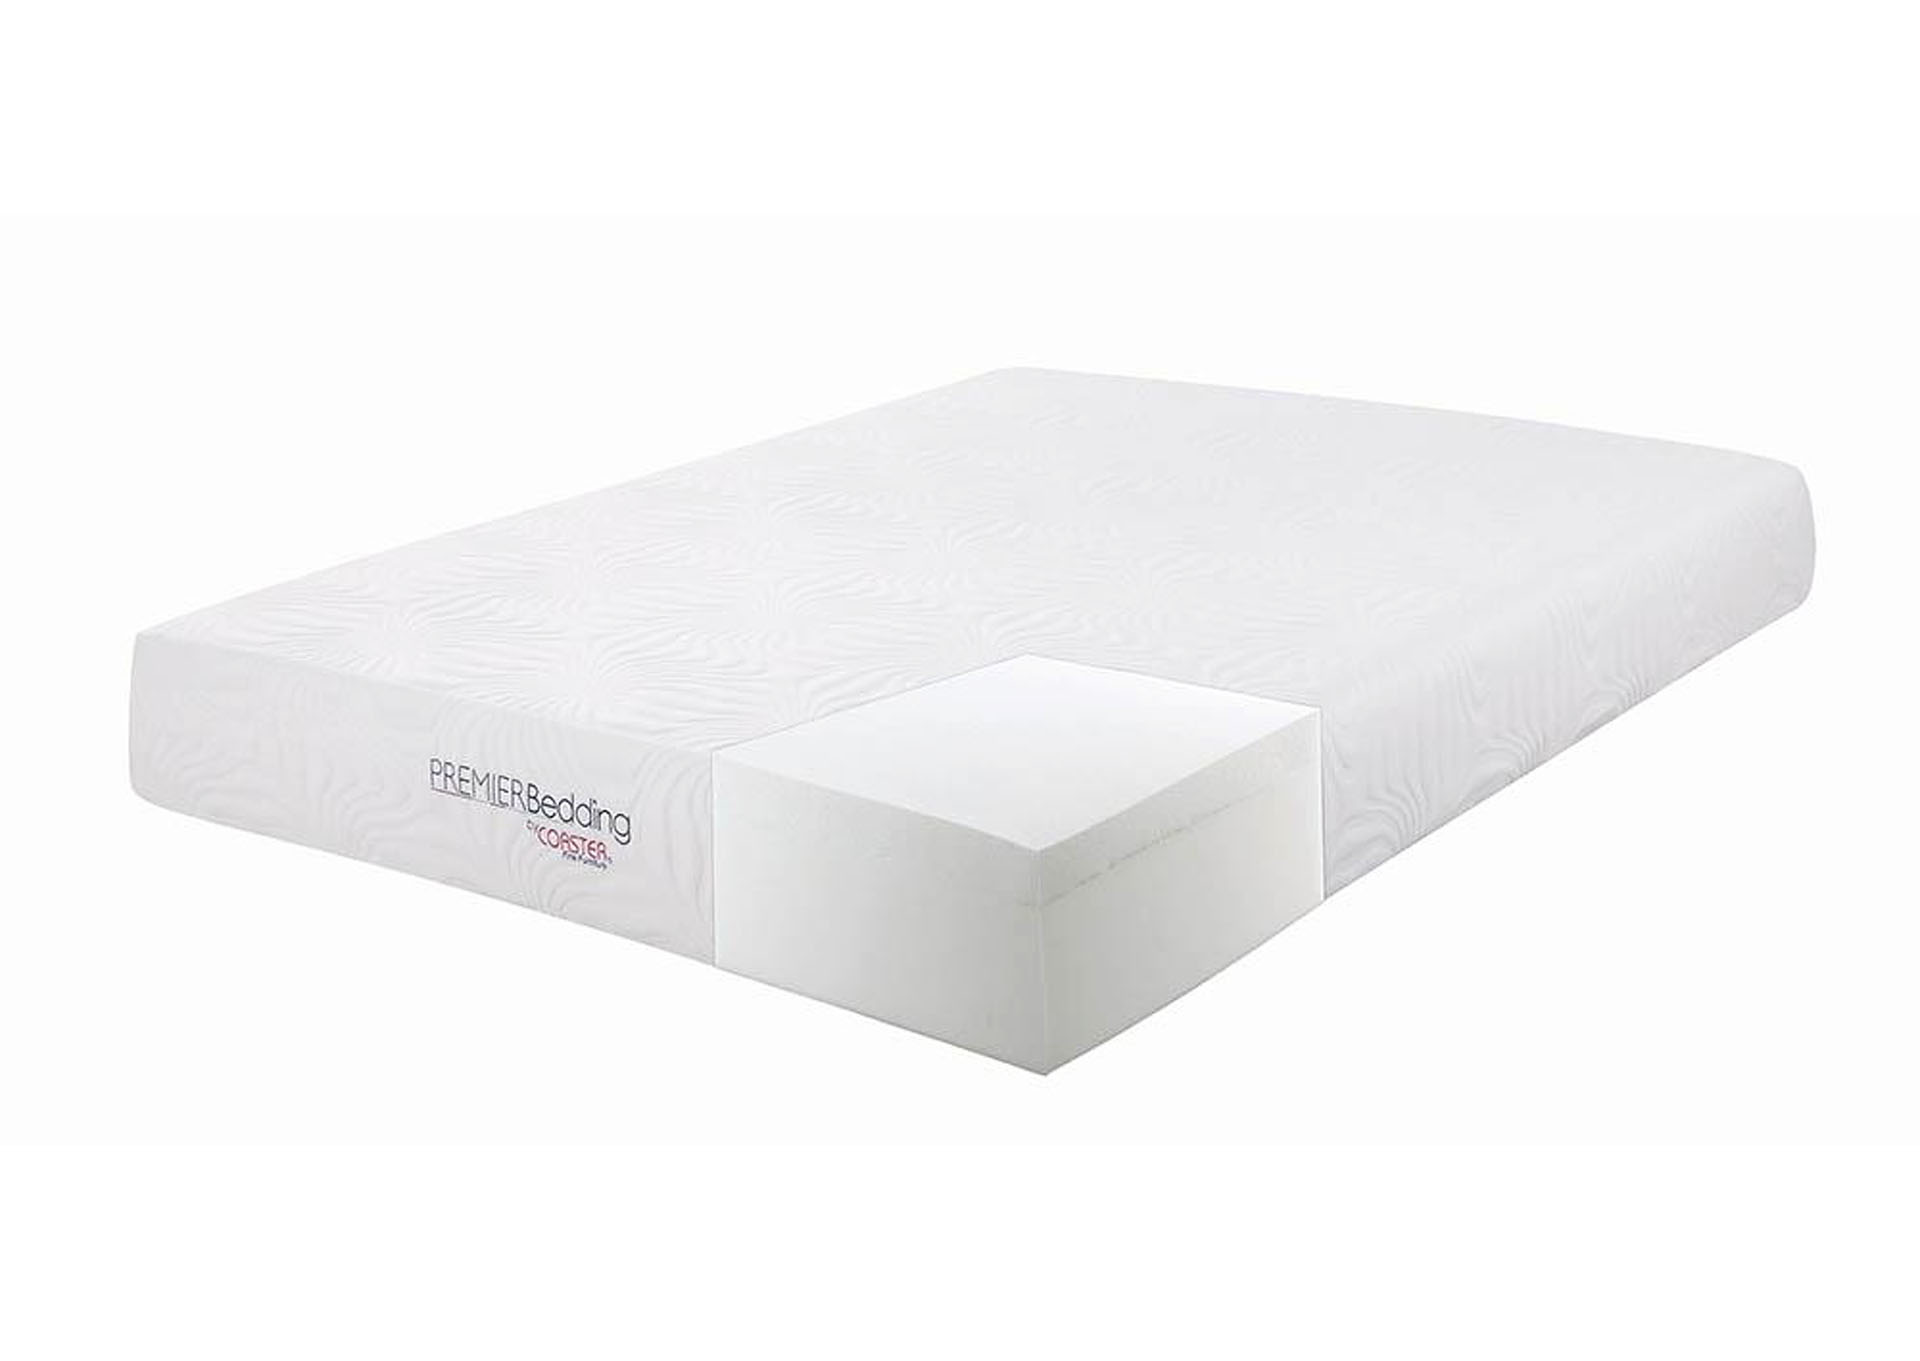 10 Queen Memory Foam Mattress,Coaster Furniture